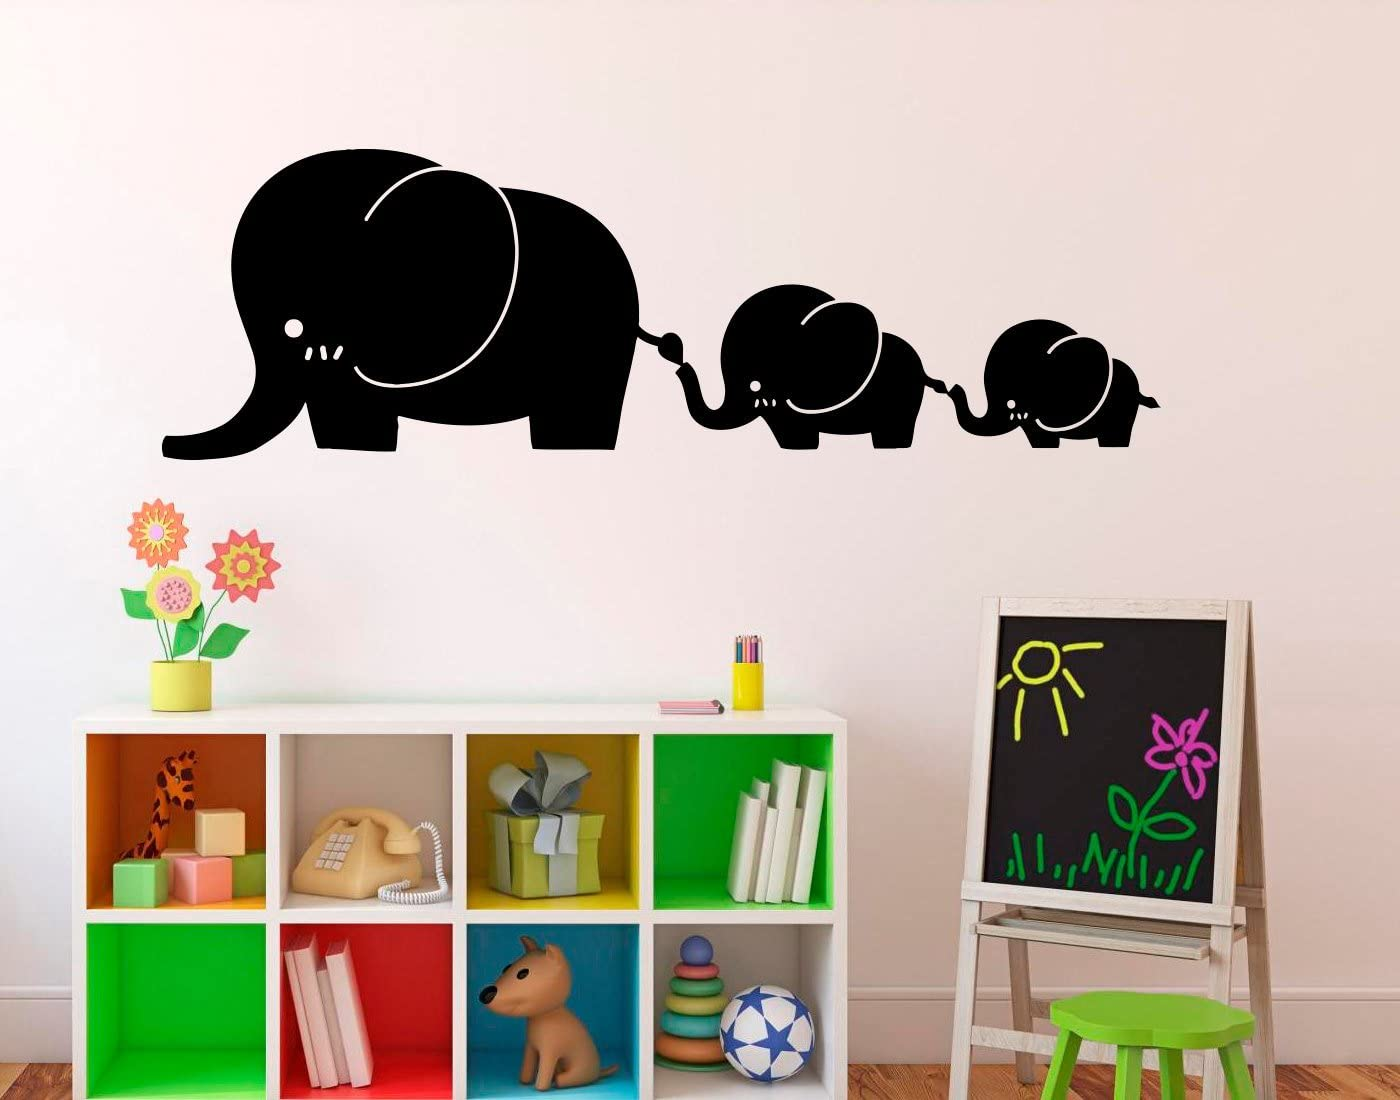 Place Elephants Family Wall Decal - Vinyl Sticker Cartoon Cute Animals Art Decor Home Interior - Kids Baby RoomDesign Bedroom Ideas Made in USA - 22x35 Inch